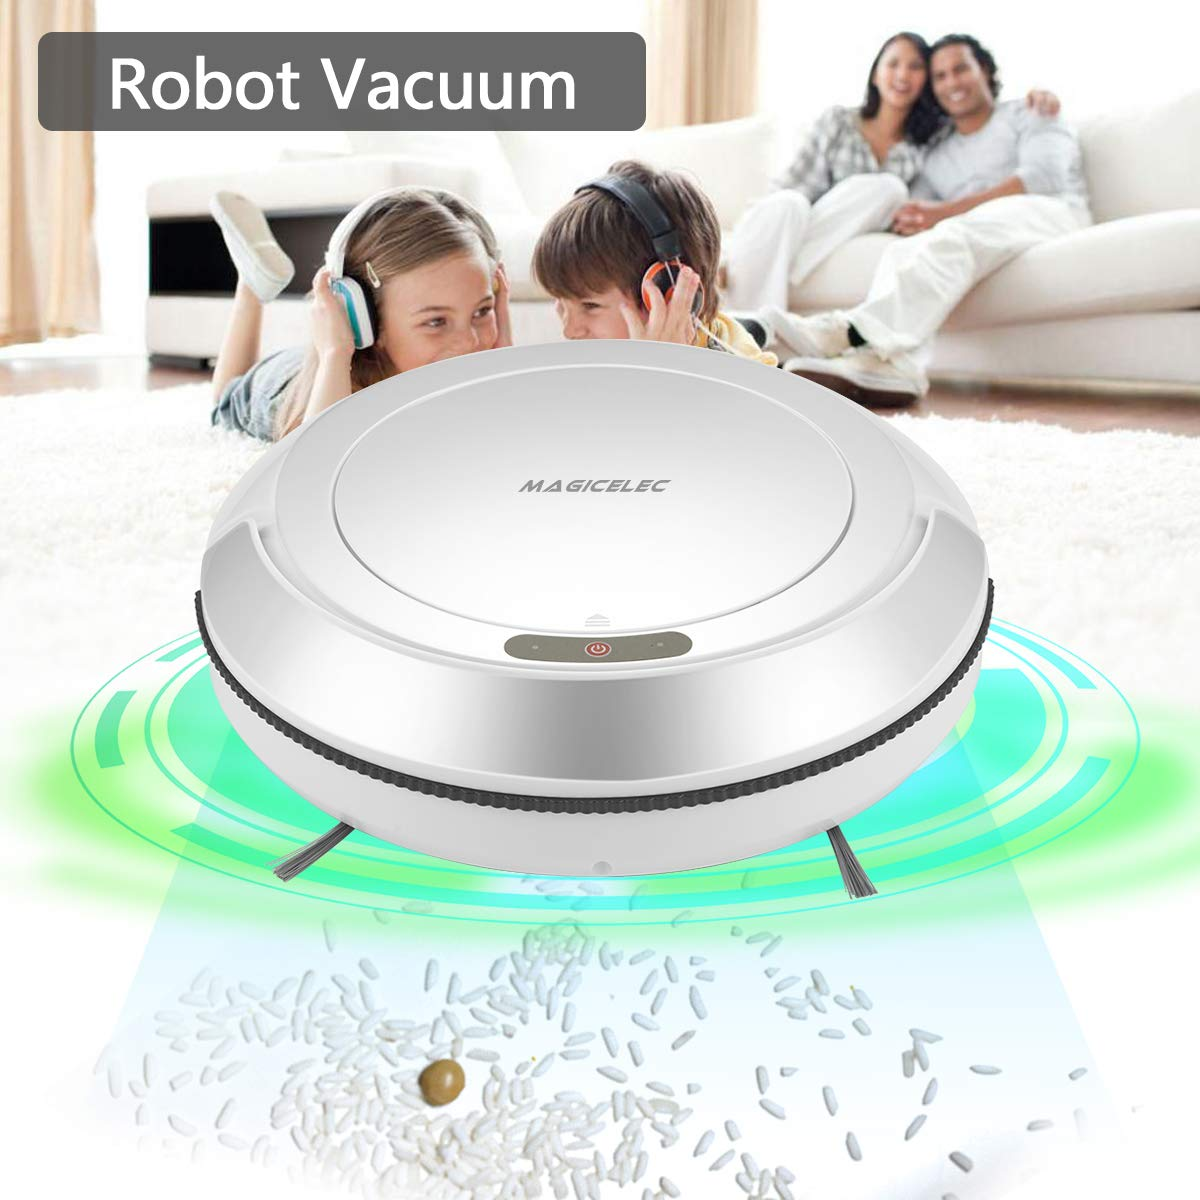 Amazon.com - Robotic Vacuum Cleaner, 1300Pa Strong Suction, Drop-Sensing Technology, Cleans Hard Floors Thin Carpet (White) -